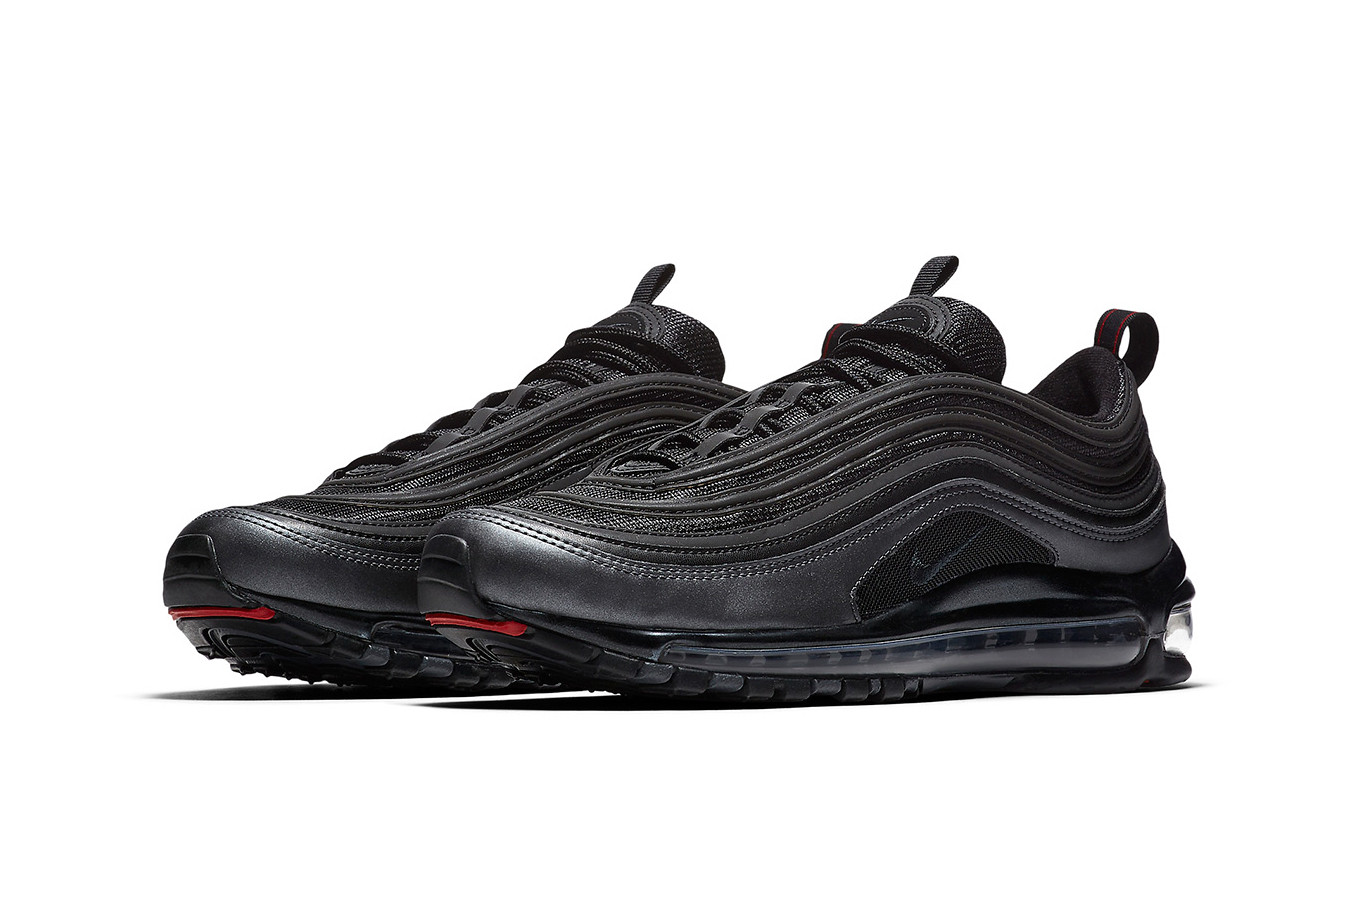 Nike Air Max 97 Black Metallic Hematite Blue Air Max 97 Black ... c407cc8f858